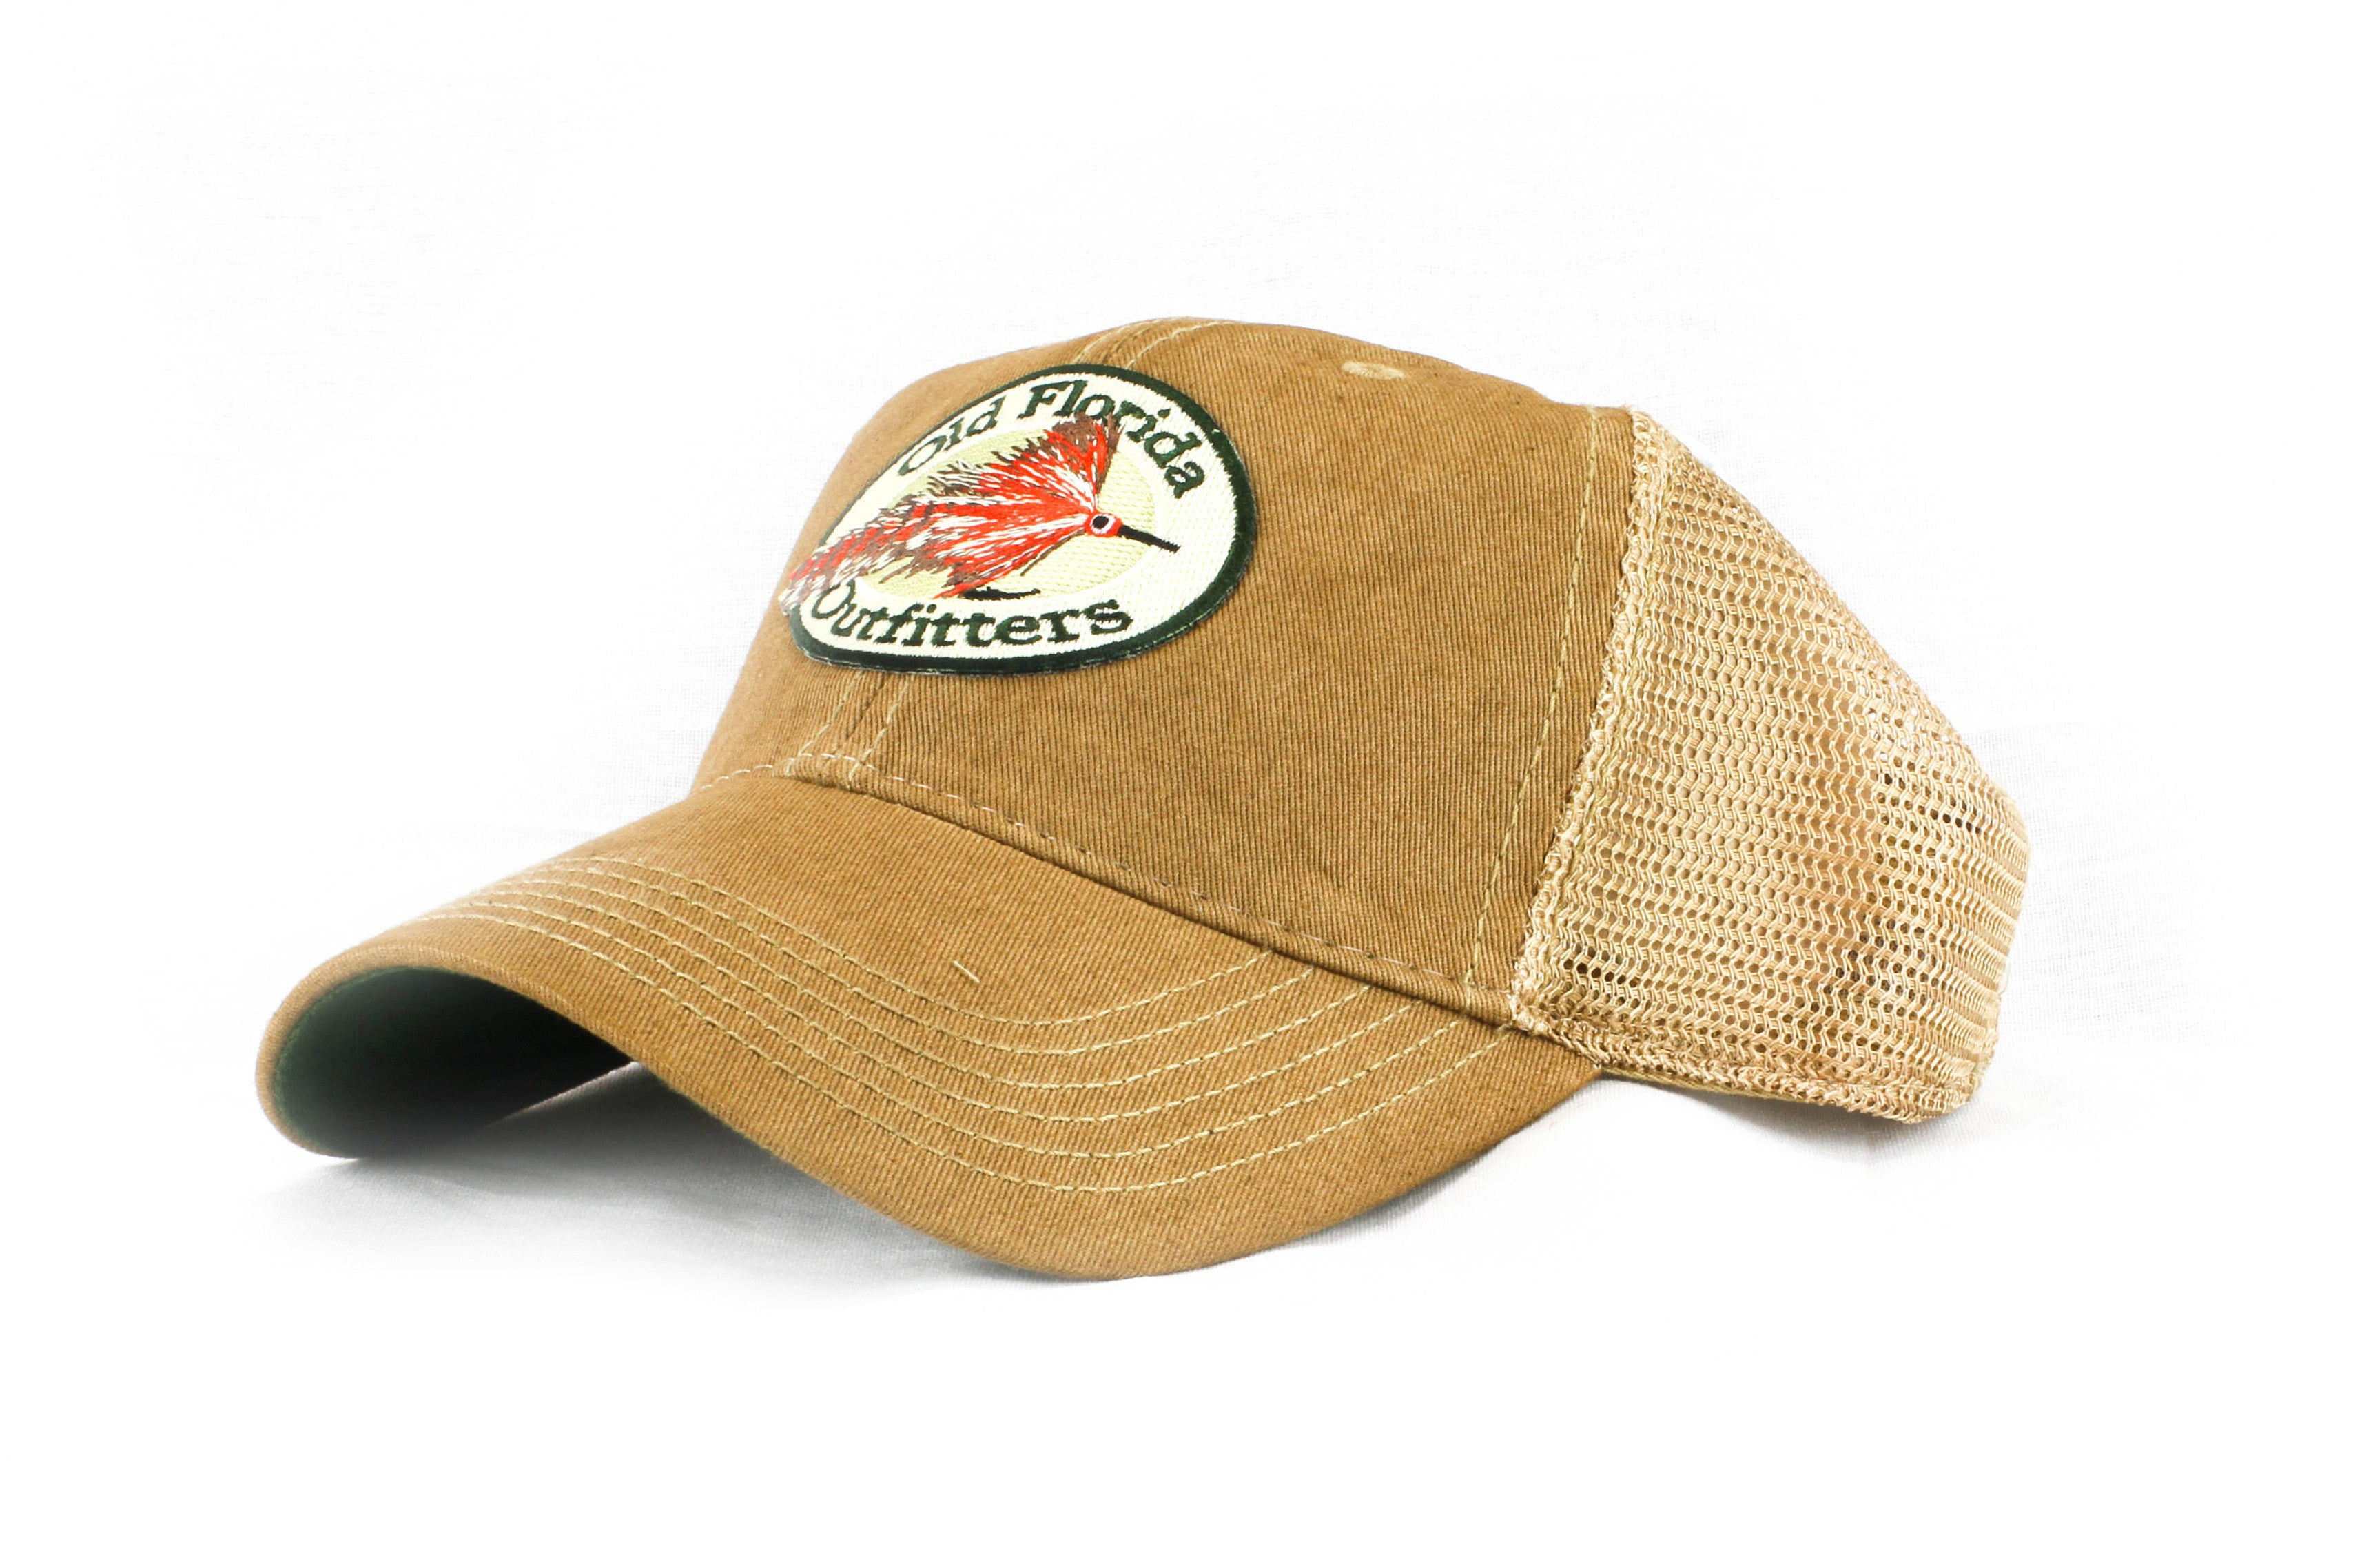 792a02507773e OFO Logo OLD FAVORITE Soft Trucker in Tan